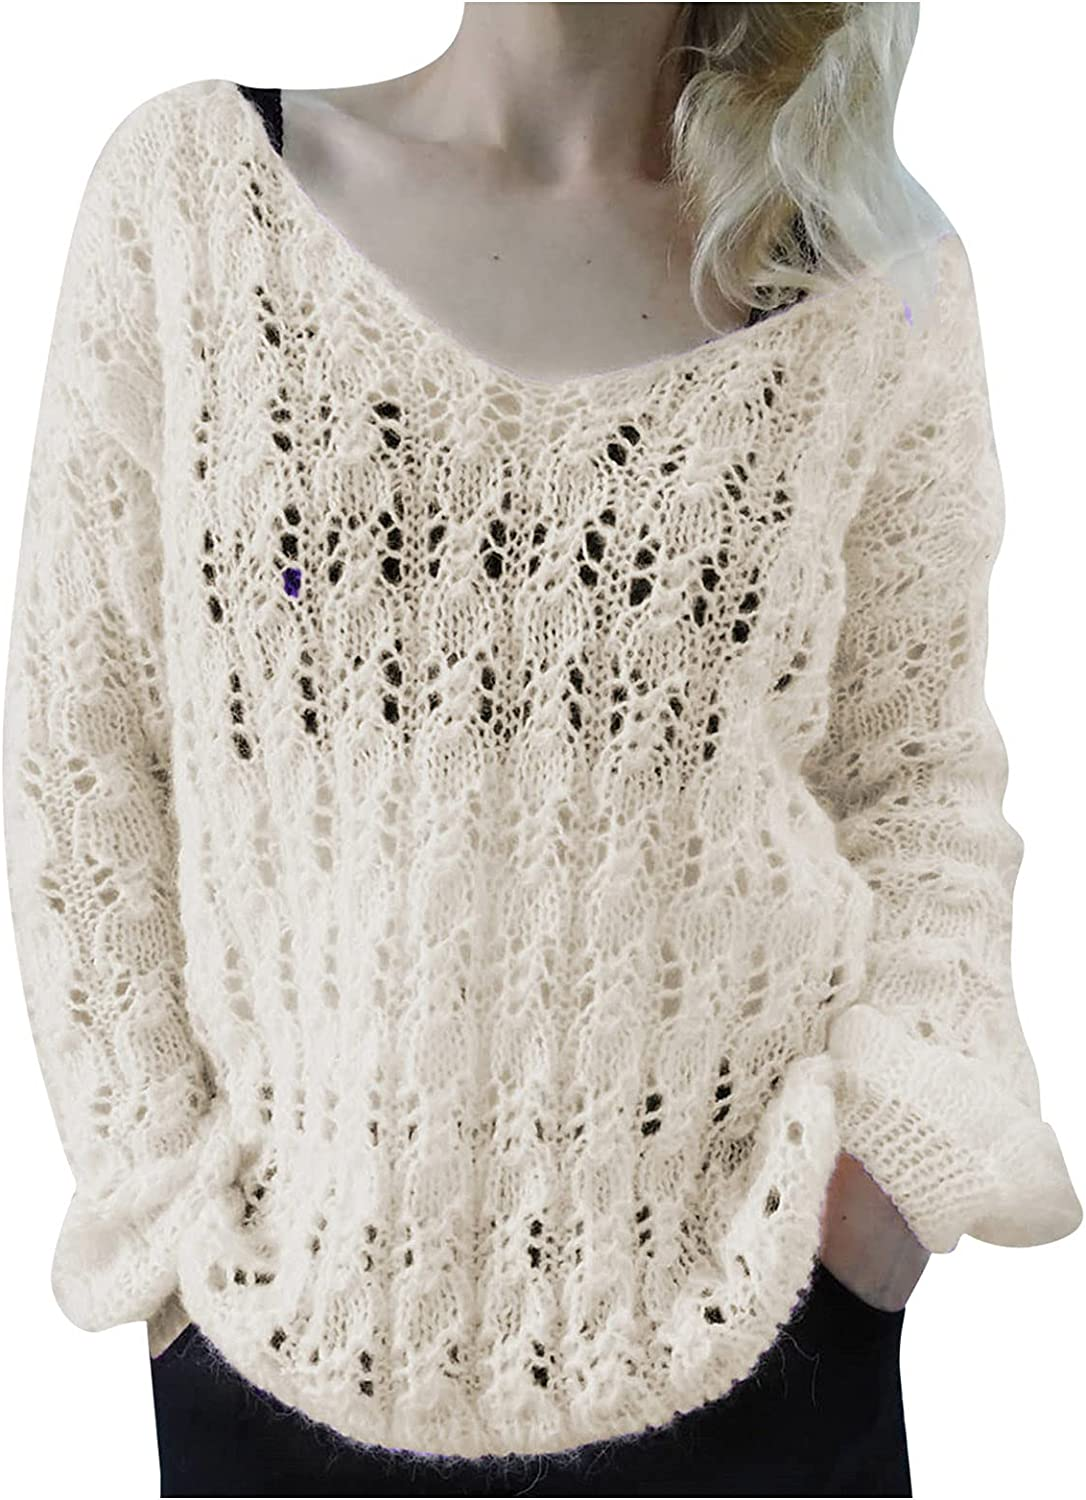 JPLZi Womens Cute Soft Crewneck Long Sleeve Hollow Cable Knit Pullover Sweaters Loose Lightweight Comfy Beach Tunic Tops